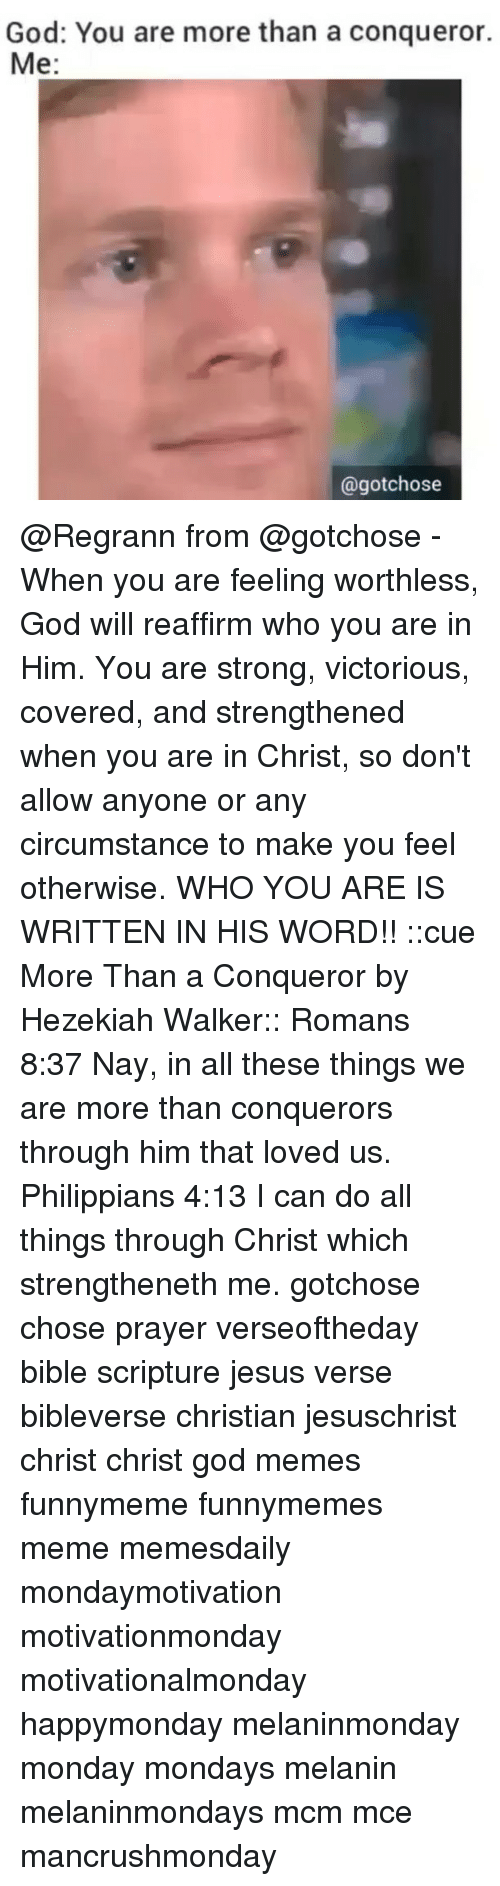 God, Jesus, and Meme: God: You are more than a conqueror.  Me  @gotchose @Regrann from @gotchose - When you are feeling worthless, God will reaffirm who you are in Him. You are strong, victorious, covered, and strengthened when you are in Christ, so don't allow anyone or any circumstance to make you feel otherwise. WHO YOU ARE IS WRITTEN IN HIS WORD!! ::cue More Than a Conqueror by Hezekiah Walker:: Romans 8:37 Nay, in all these things we are more than conquerors through him that loved us. Philippians 4:13 I can do all things through Christ which strengtheneth me. gotchose chose prayer verseoftheday bible scripture jesus verse bibleverse christian jesuschrist christ christ god memes funnymeme funnymemes meme memesdaily mondaymotivation motivationmonday motivationalmonday happymonday melaninmonday monday mondays melanin melaninmondays mcm mce mancrushmonday